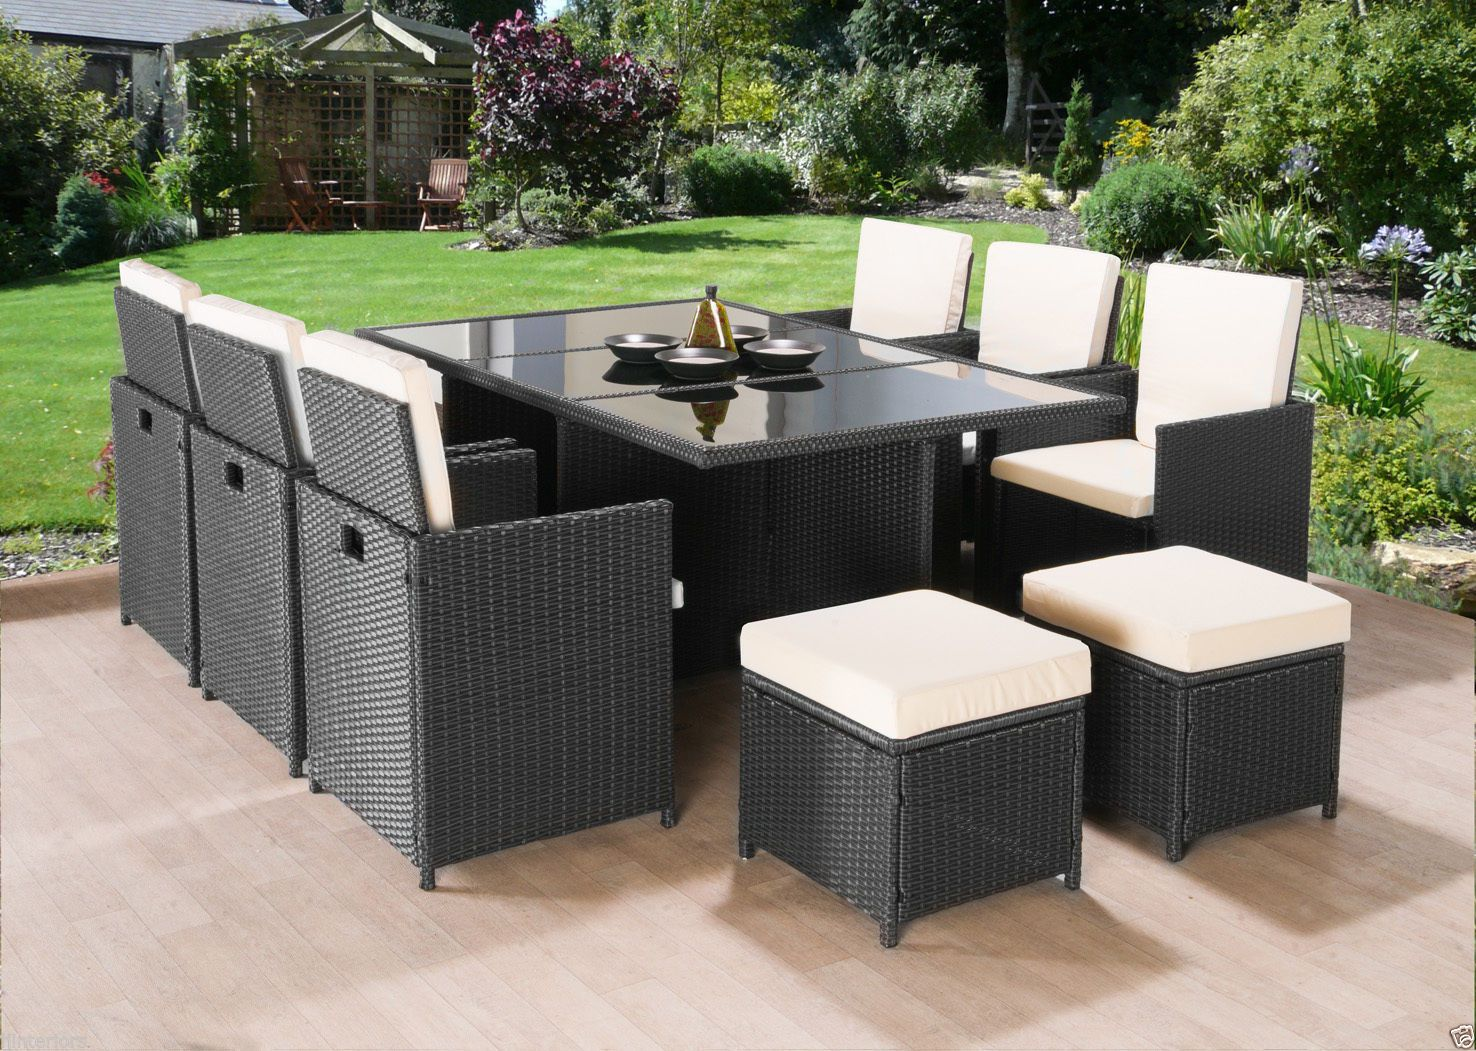 11 Piece Rattan Garden Furniture Set Priced To Clear Immediately